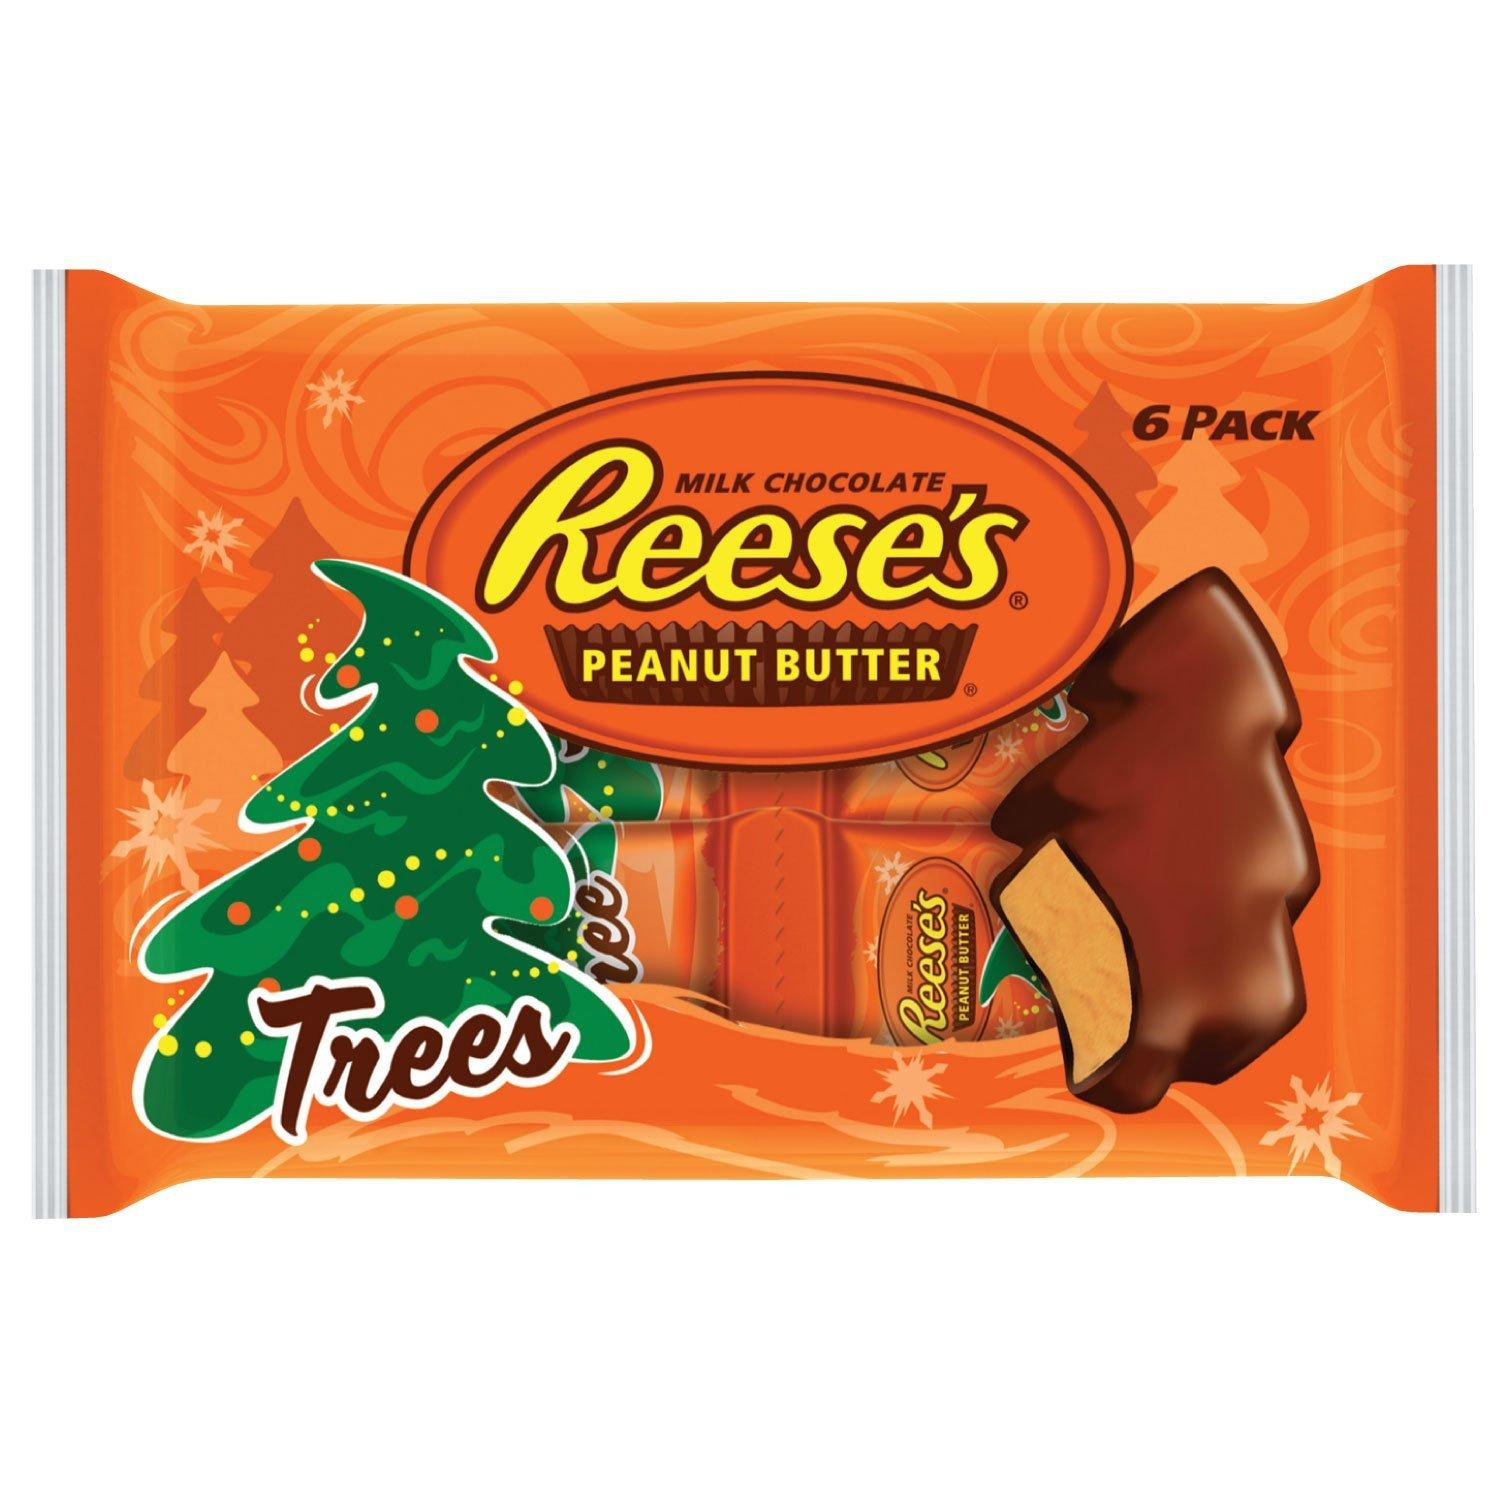 $6.77 Reese's Peanut Butter Trees 6 Pack, 7.2-ounce (Pack of 4)